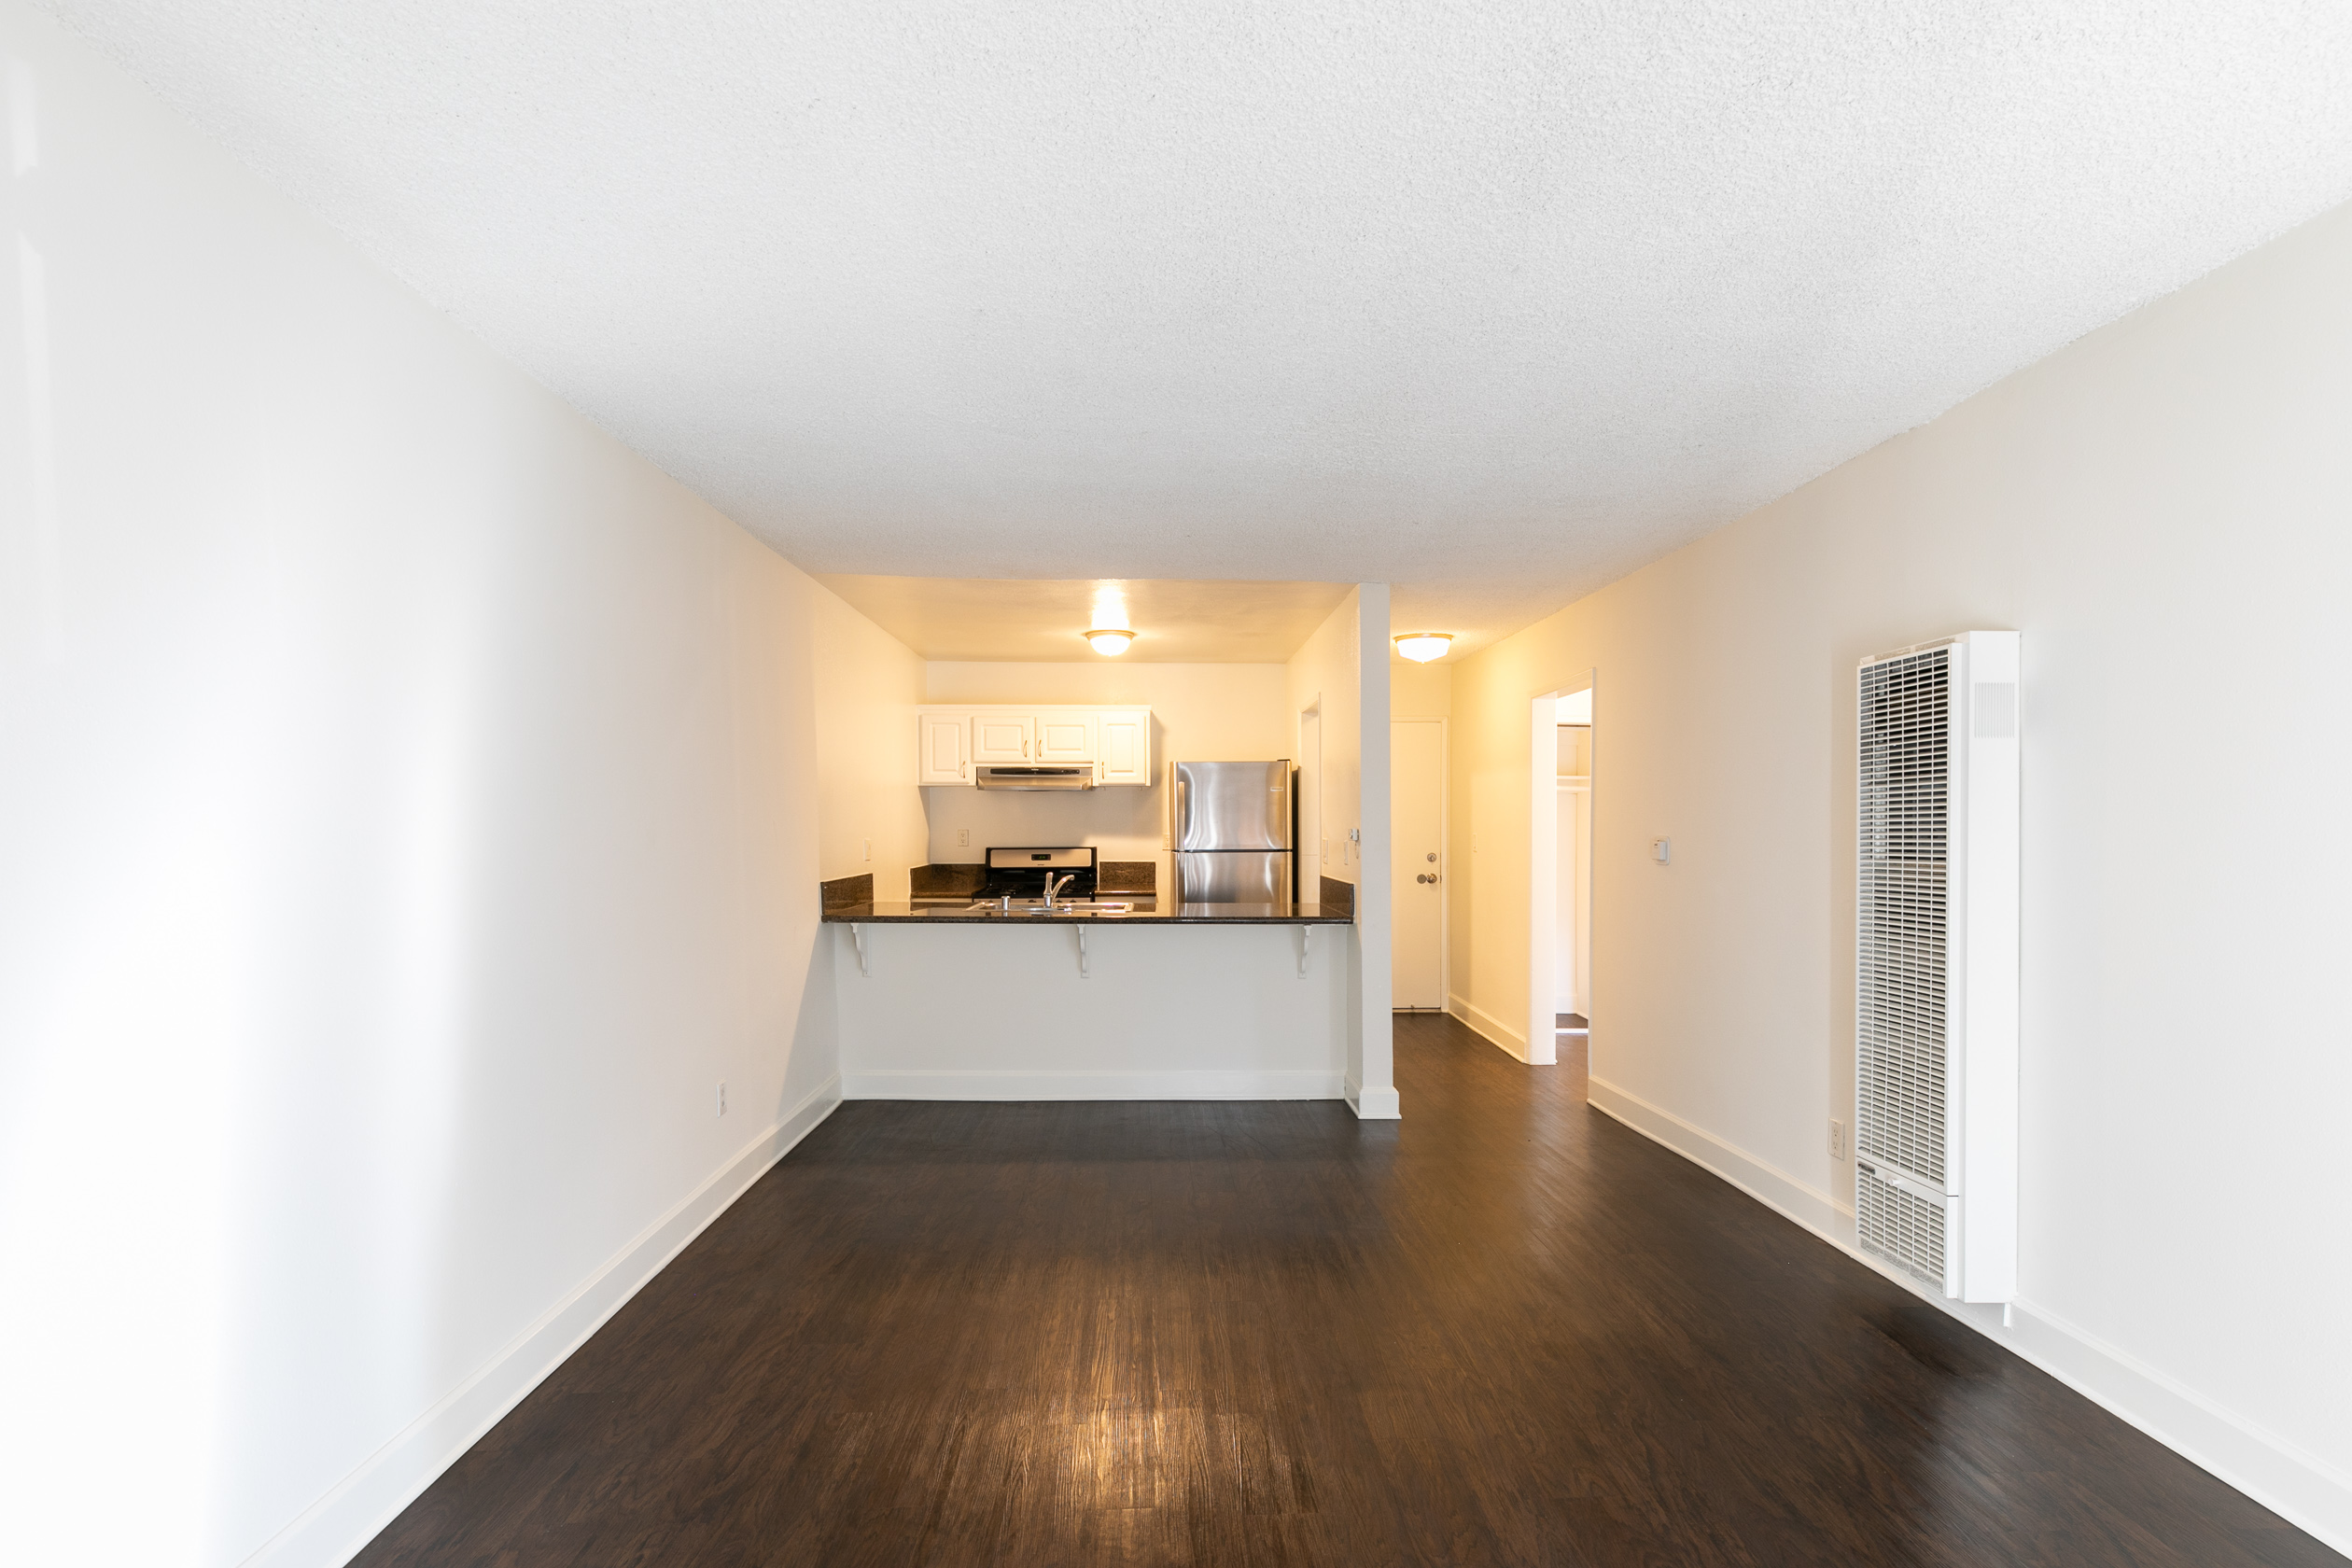 SLEEK, CHIC! SPACIOUS ONE BEDROOM - MODERN KITCHEN- STAINLESS APPLIANCES + BALCONY - PERFECT K-TOWN LOCATION!